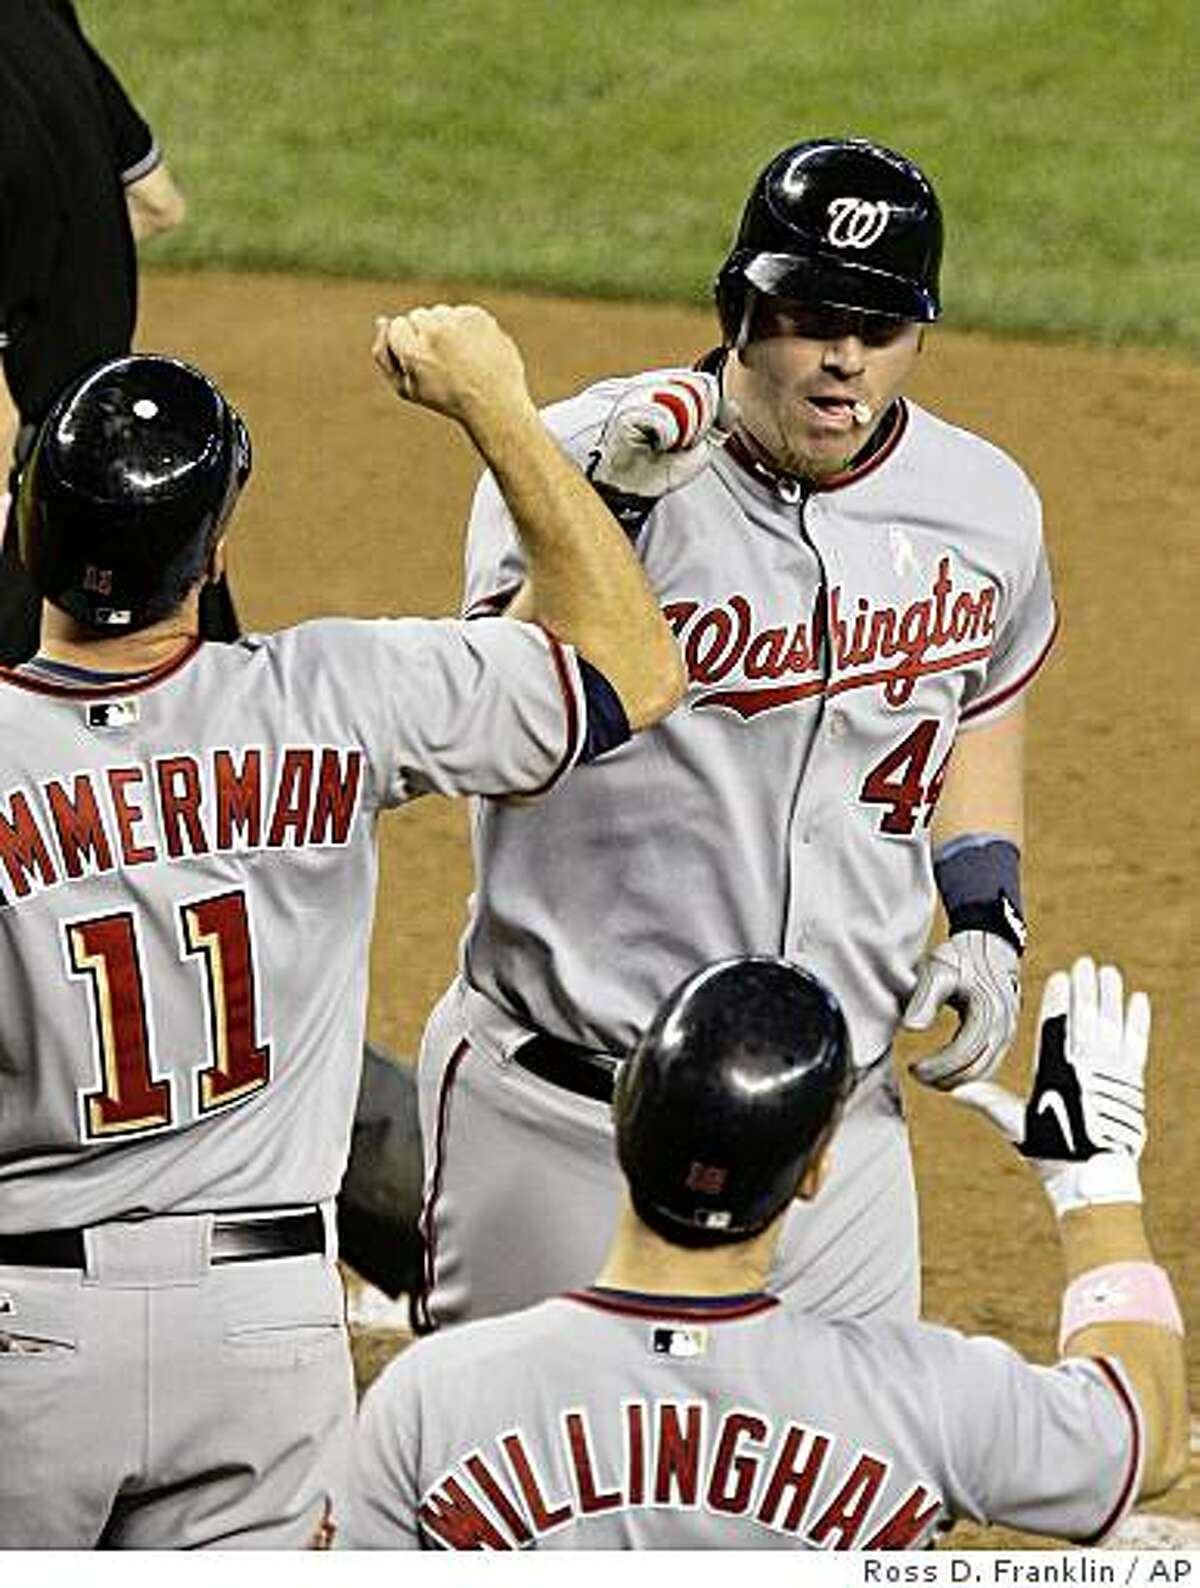 Washington Nationals' Adam Dunn, top right, celebrates his second home run of the game against the Arizona Diamondbacks with teammates Ryan Zimmerman (11), and Josh Willingham in the fifth inning during a baseball game Sunday, May 10, 2009, in Phoenix. (AP Photo/Ross D. Franklin)